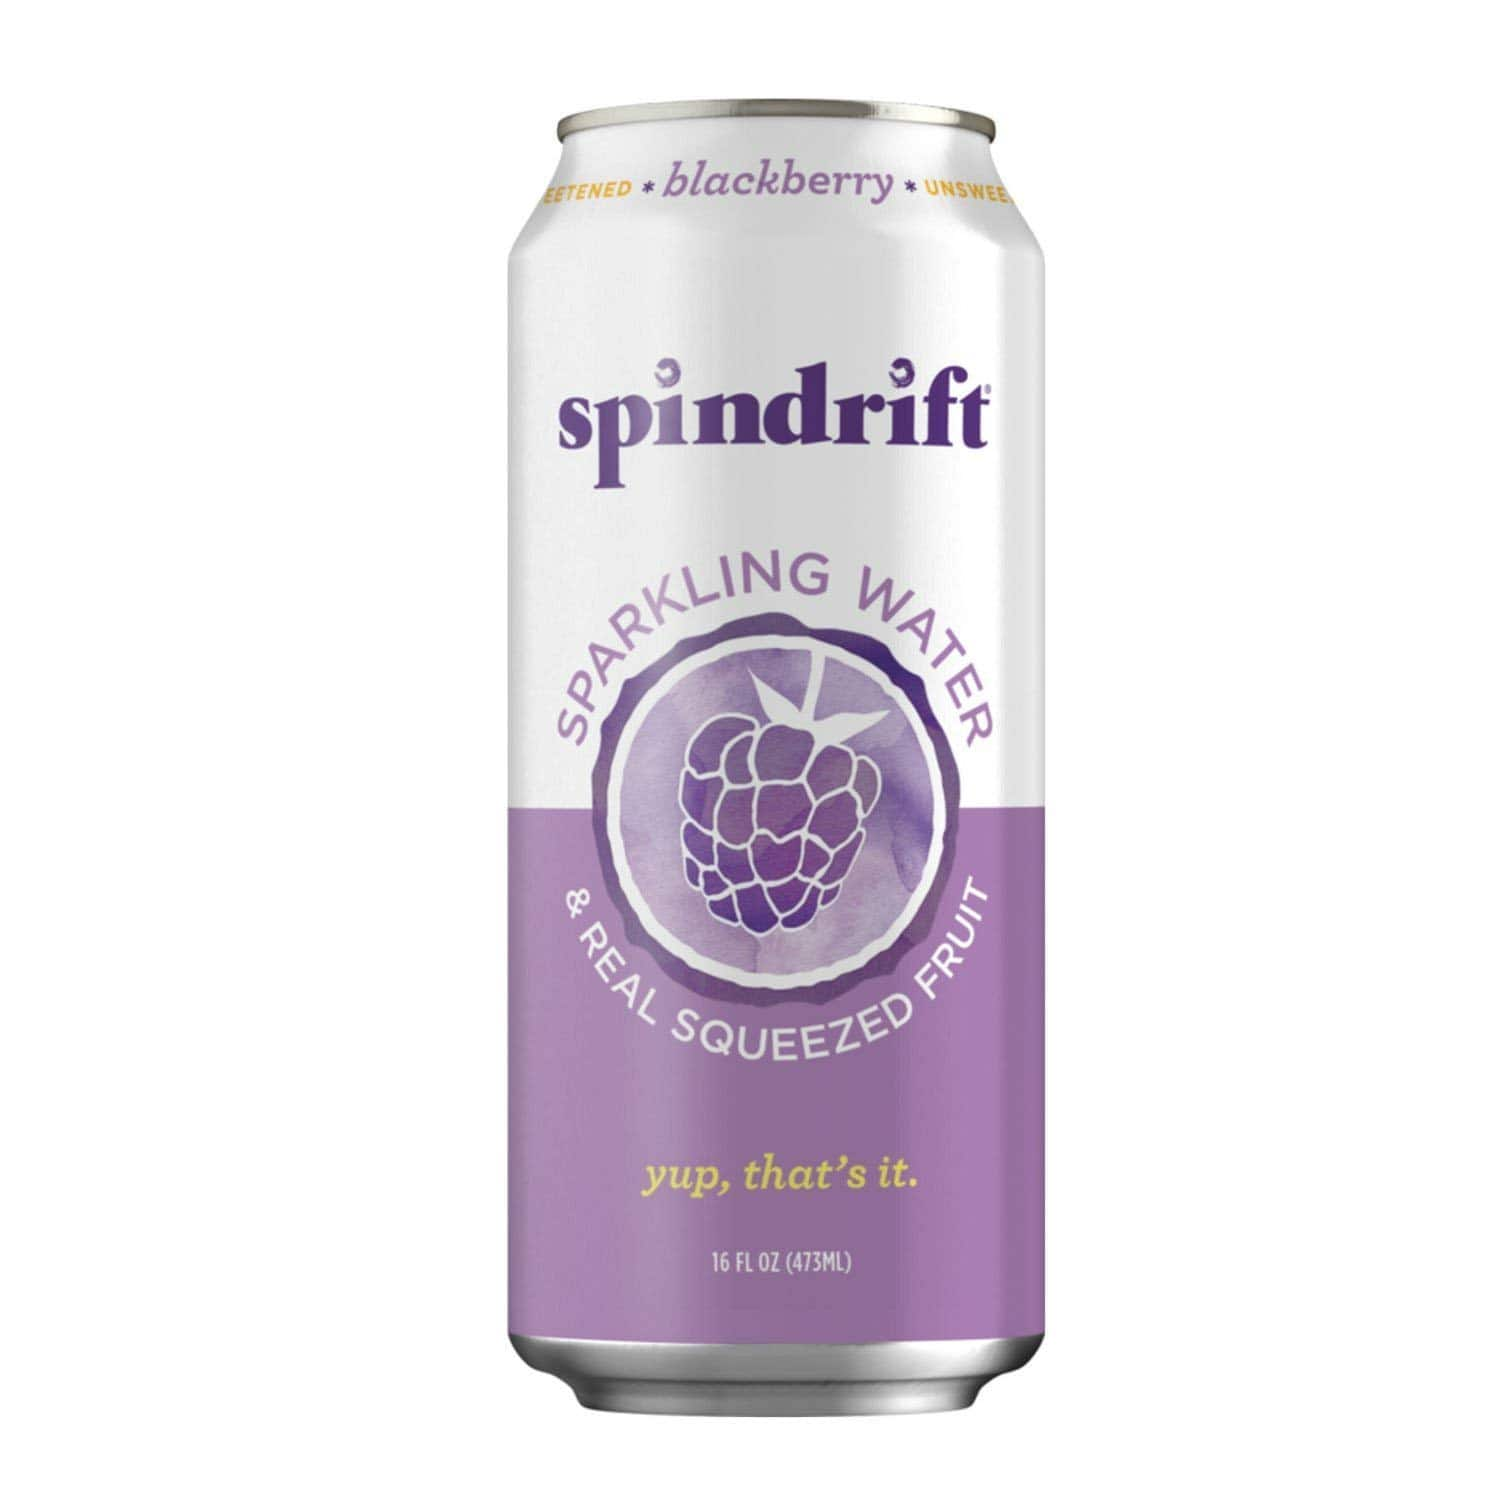 Spindrift Blackberry Sparkling Water, 16-Fluid-Ounce Cans, Pack of 12 for $11.38 + FS